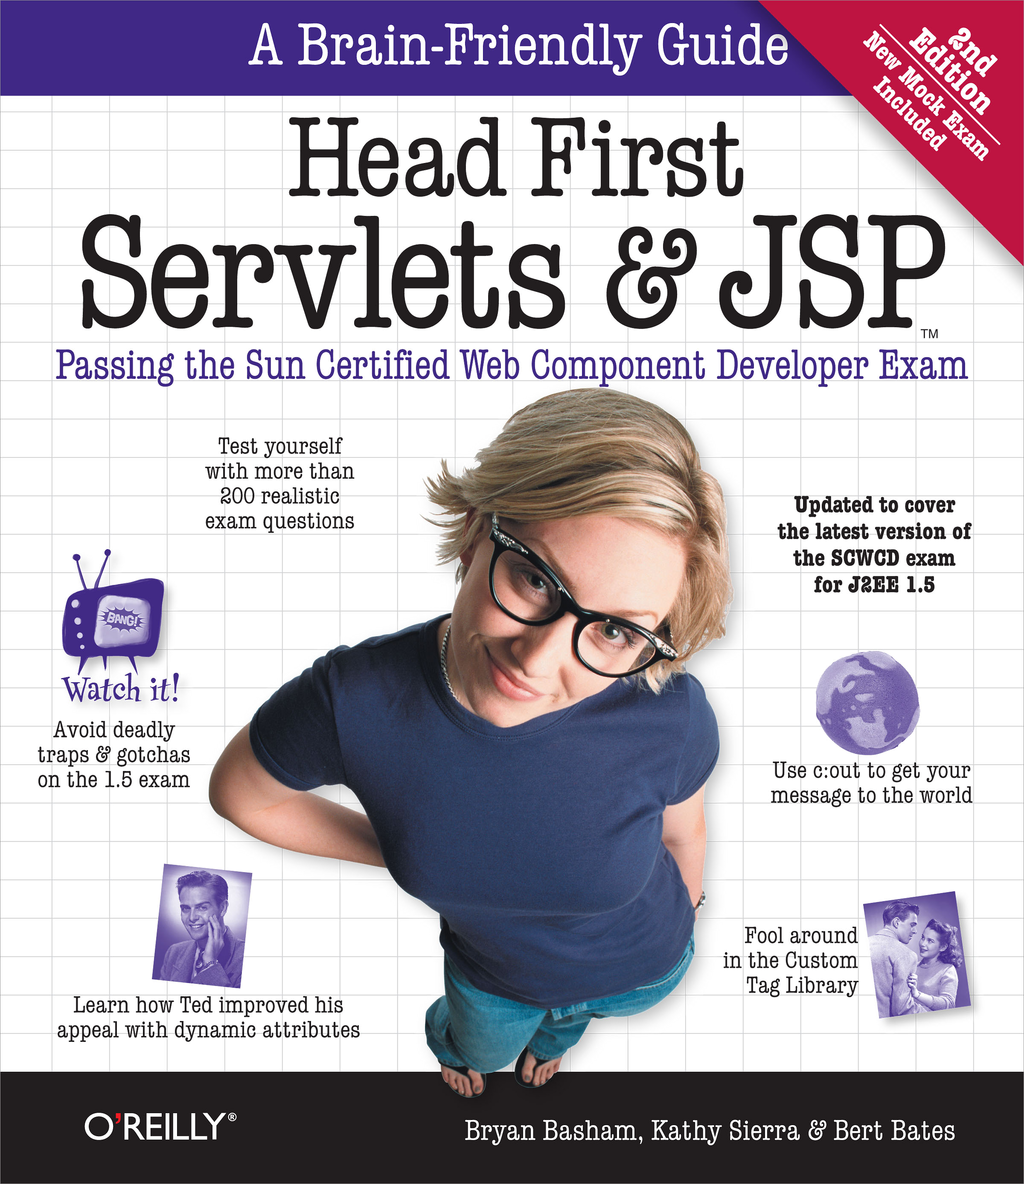 Head First Servlets and JSP By: Bert Bates,Bryan Basham,Kathy Sierra